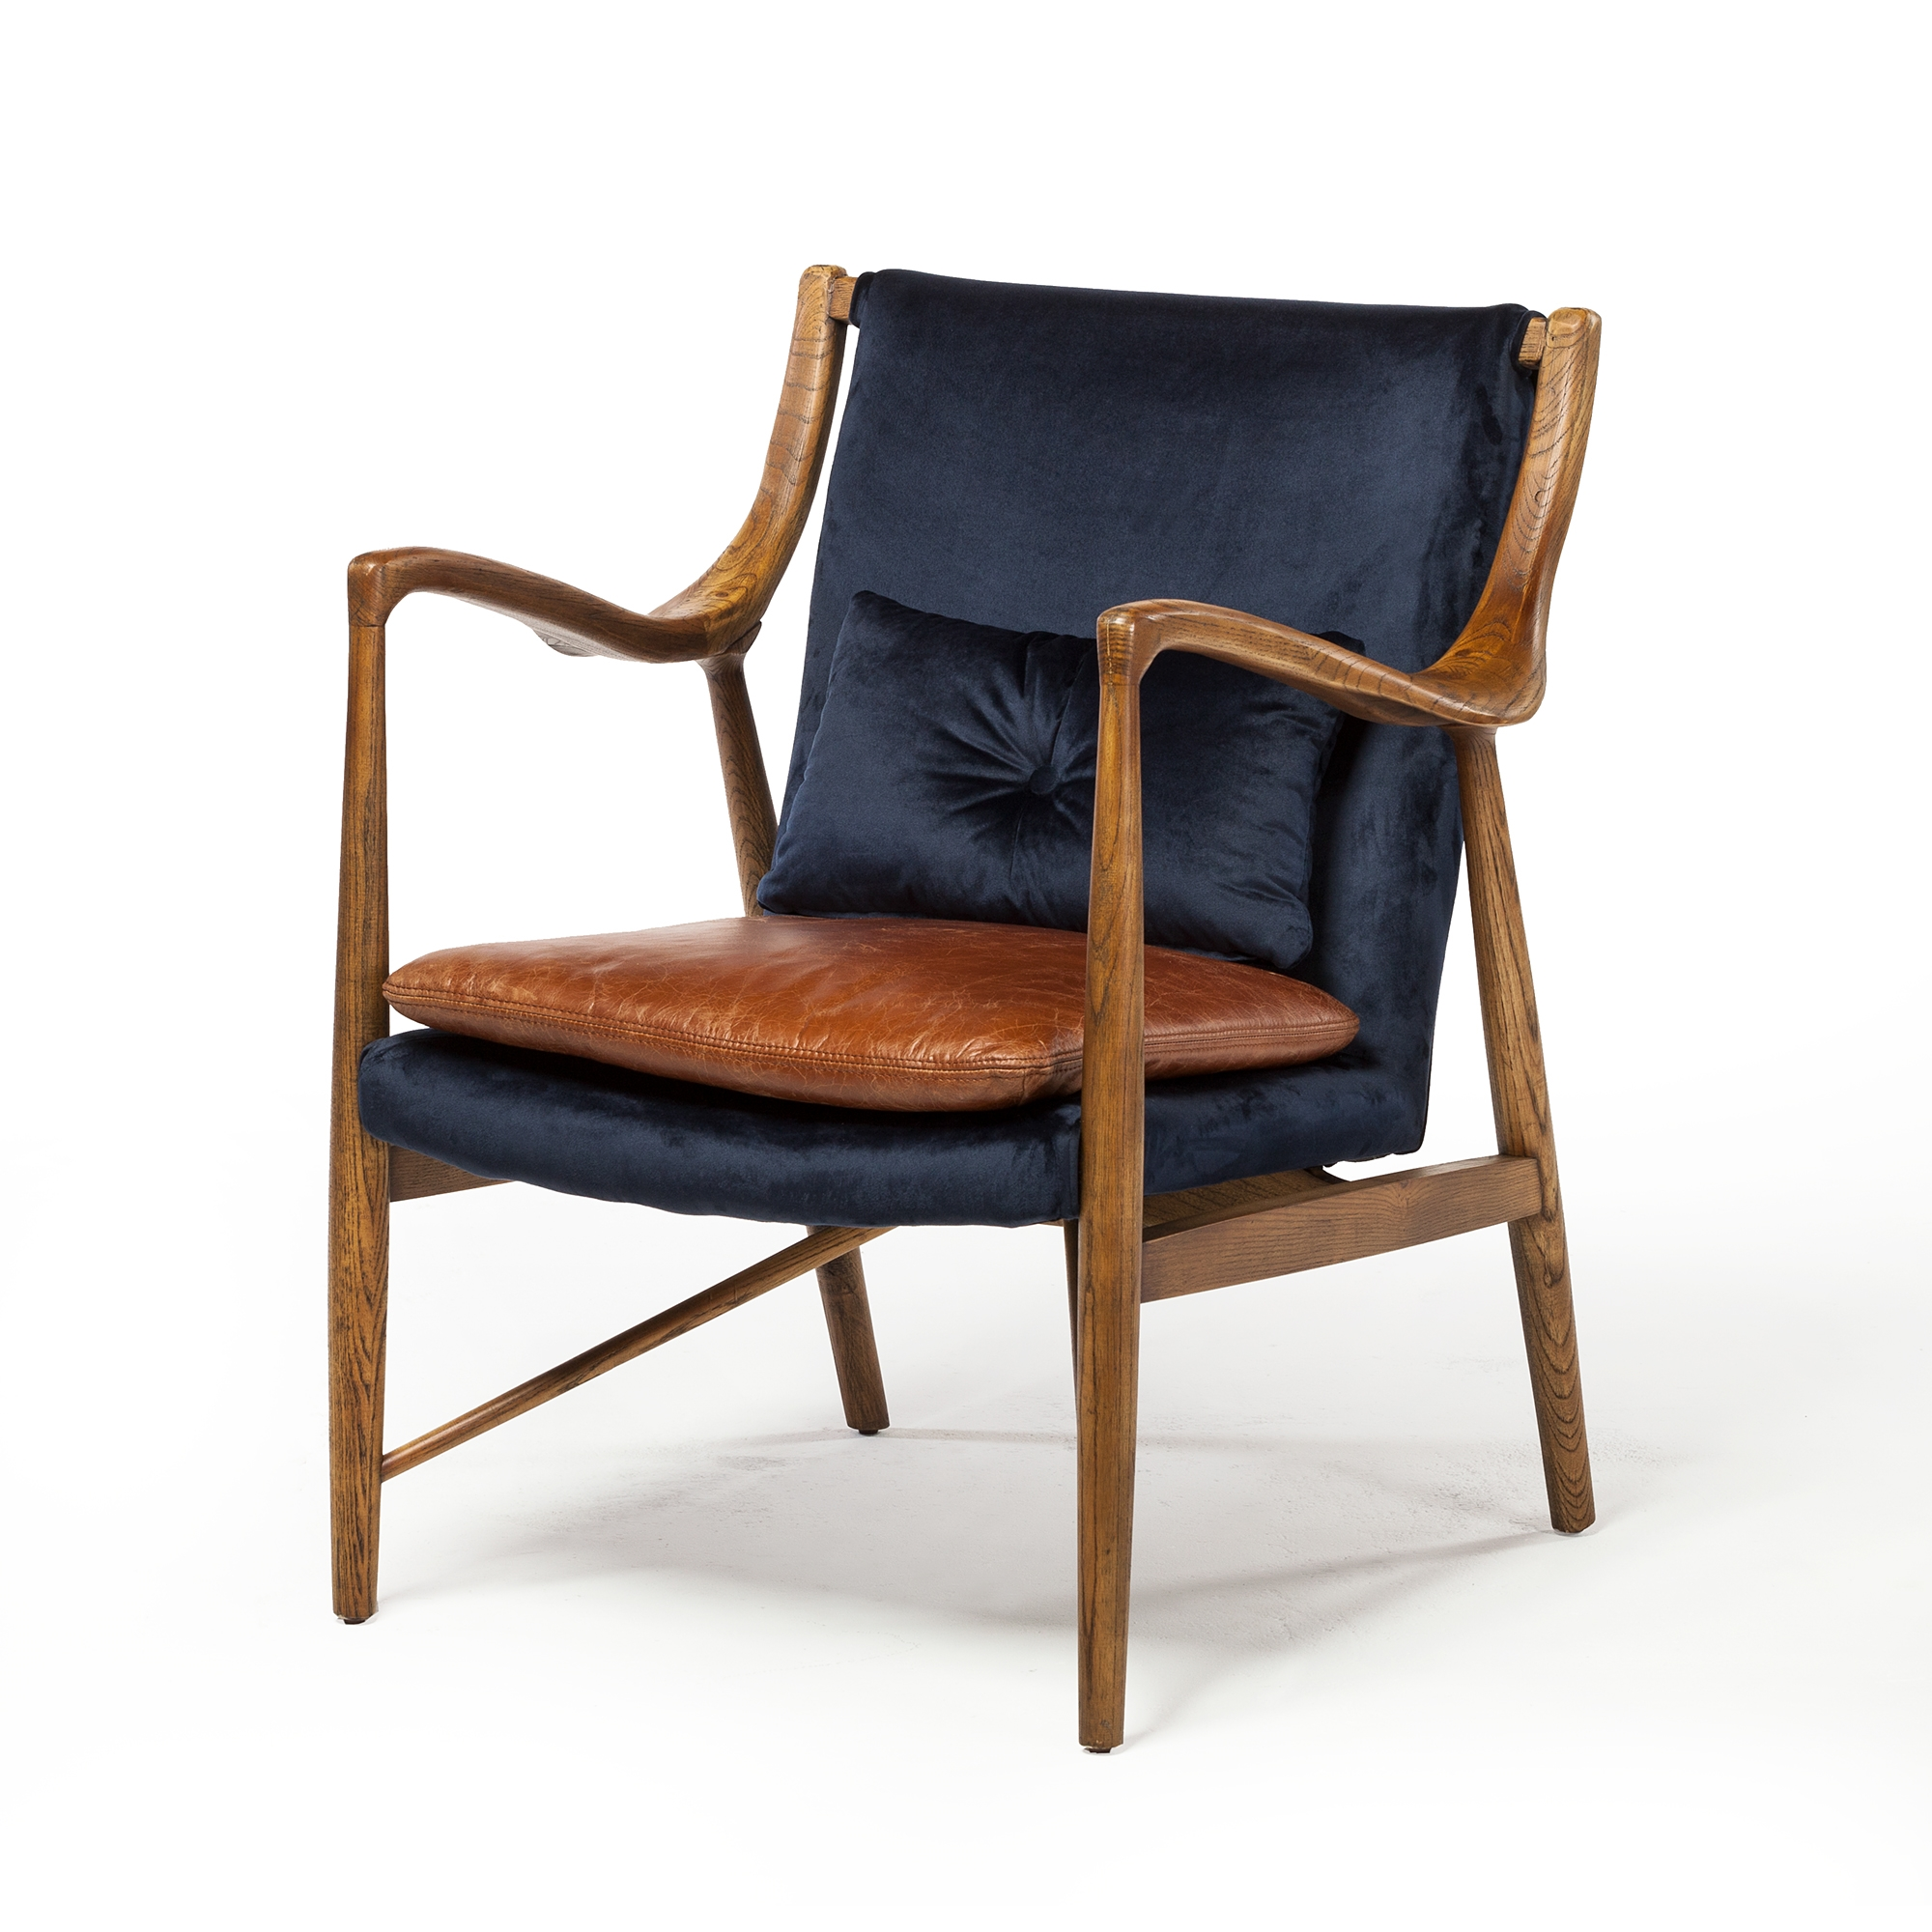 Swell Copenhagen Midcentury Chair With Walnut Frame In Blue Velvet Pabps2019 Chair Design Images Pabps2019Com